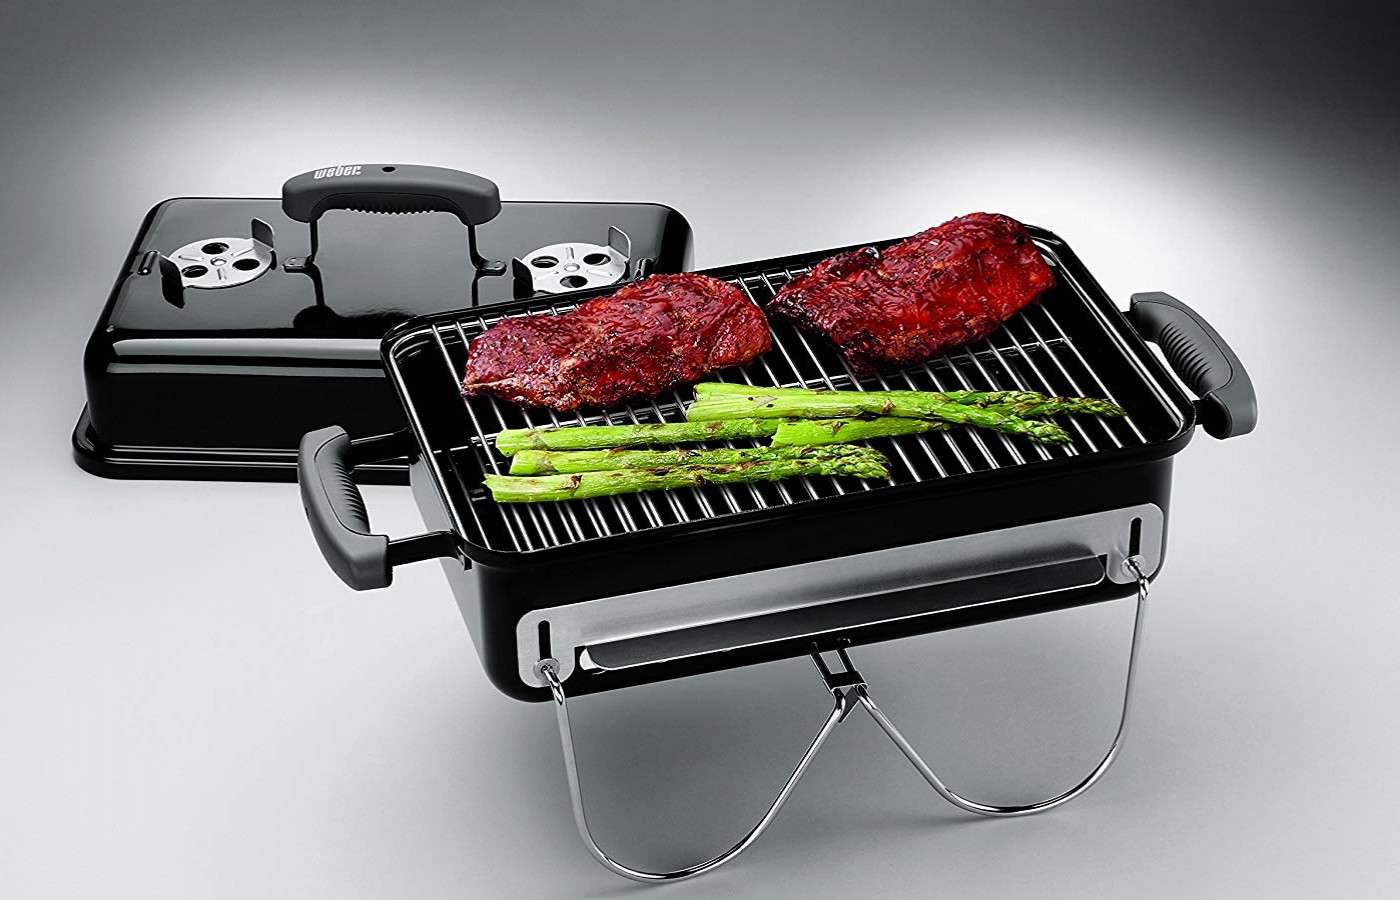 The grill is easy to use and comes with simple instructions.